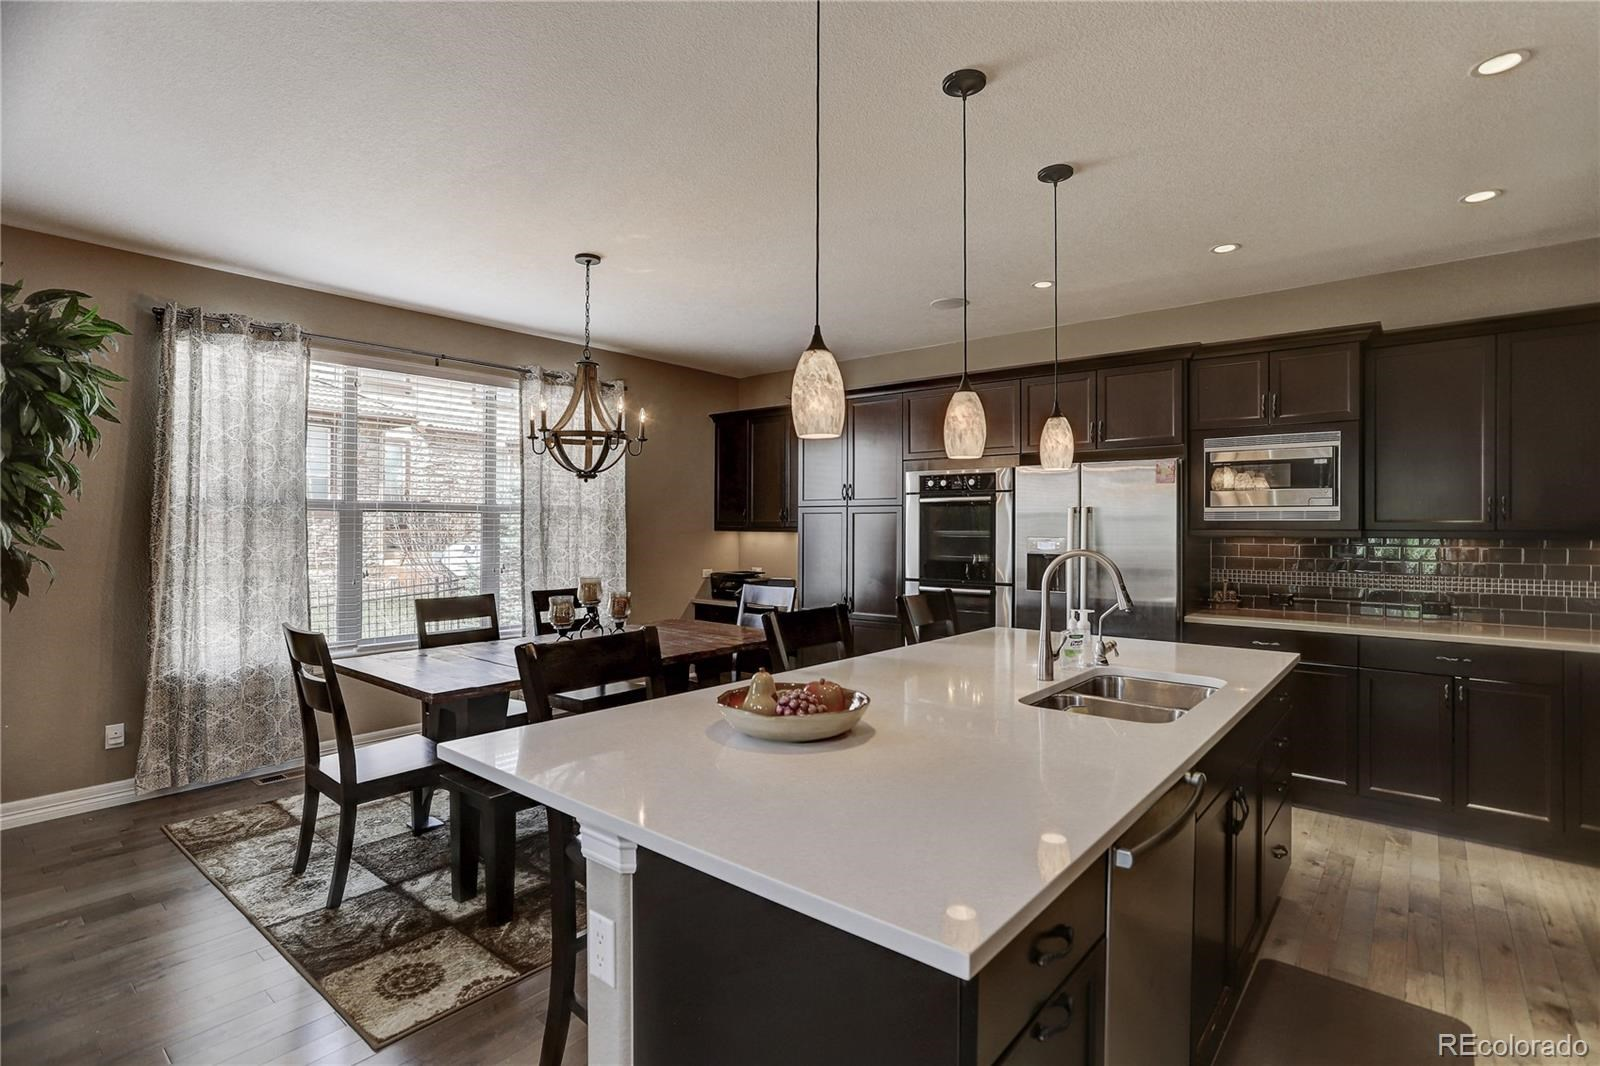 MLS# 8360577 - 8 - 2247 S Isabell Court, Lakewood, CO 80228